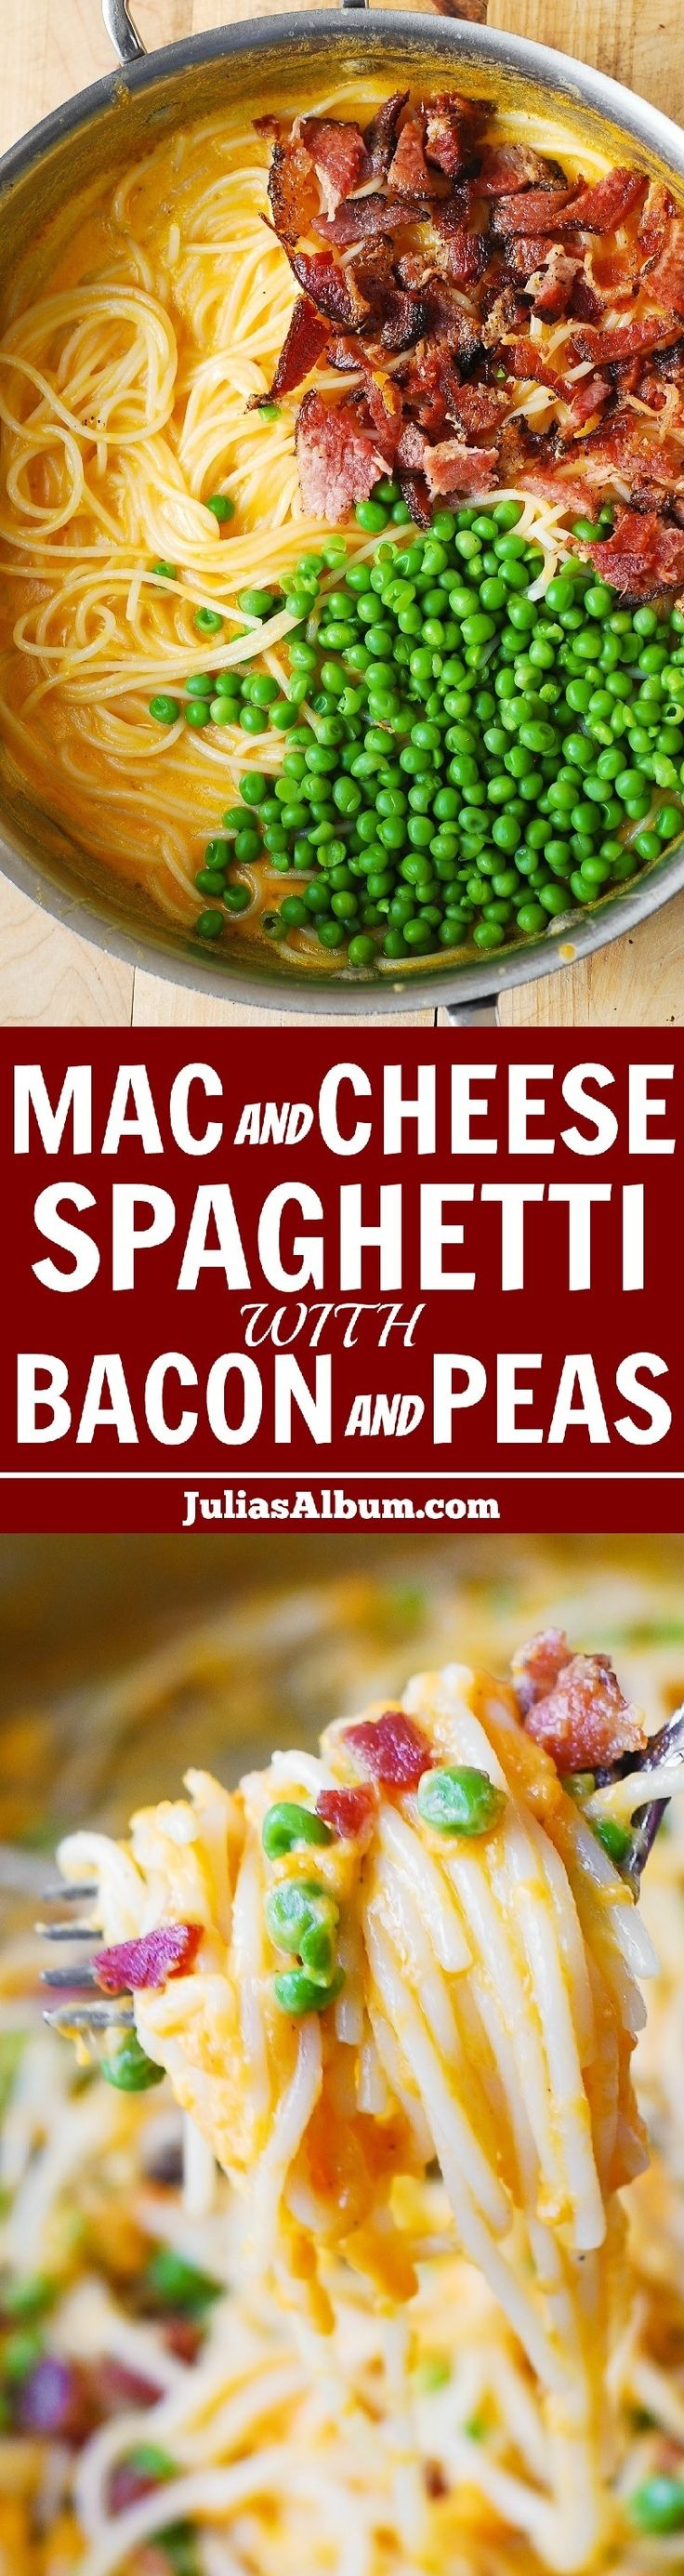 Mac and Cheese Spaghetti with Bacon and Peas (in a flavorful cheddar sauce). 30-minute